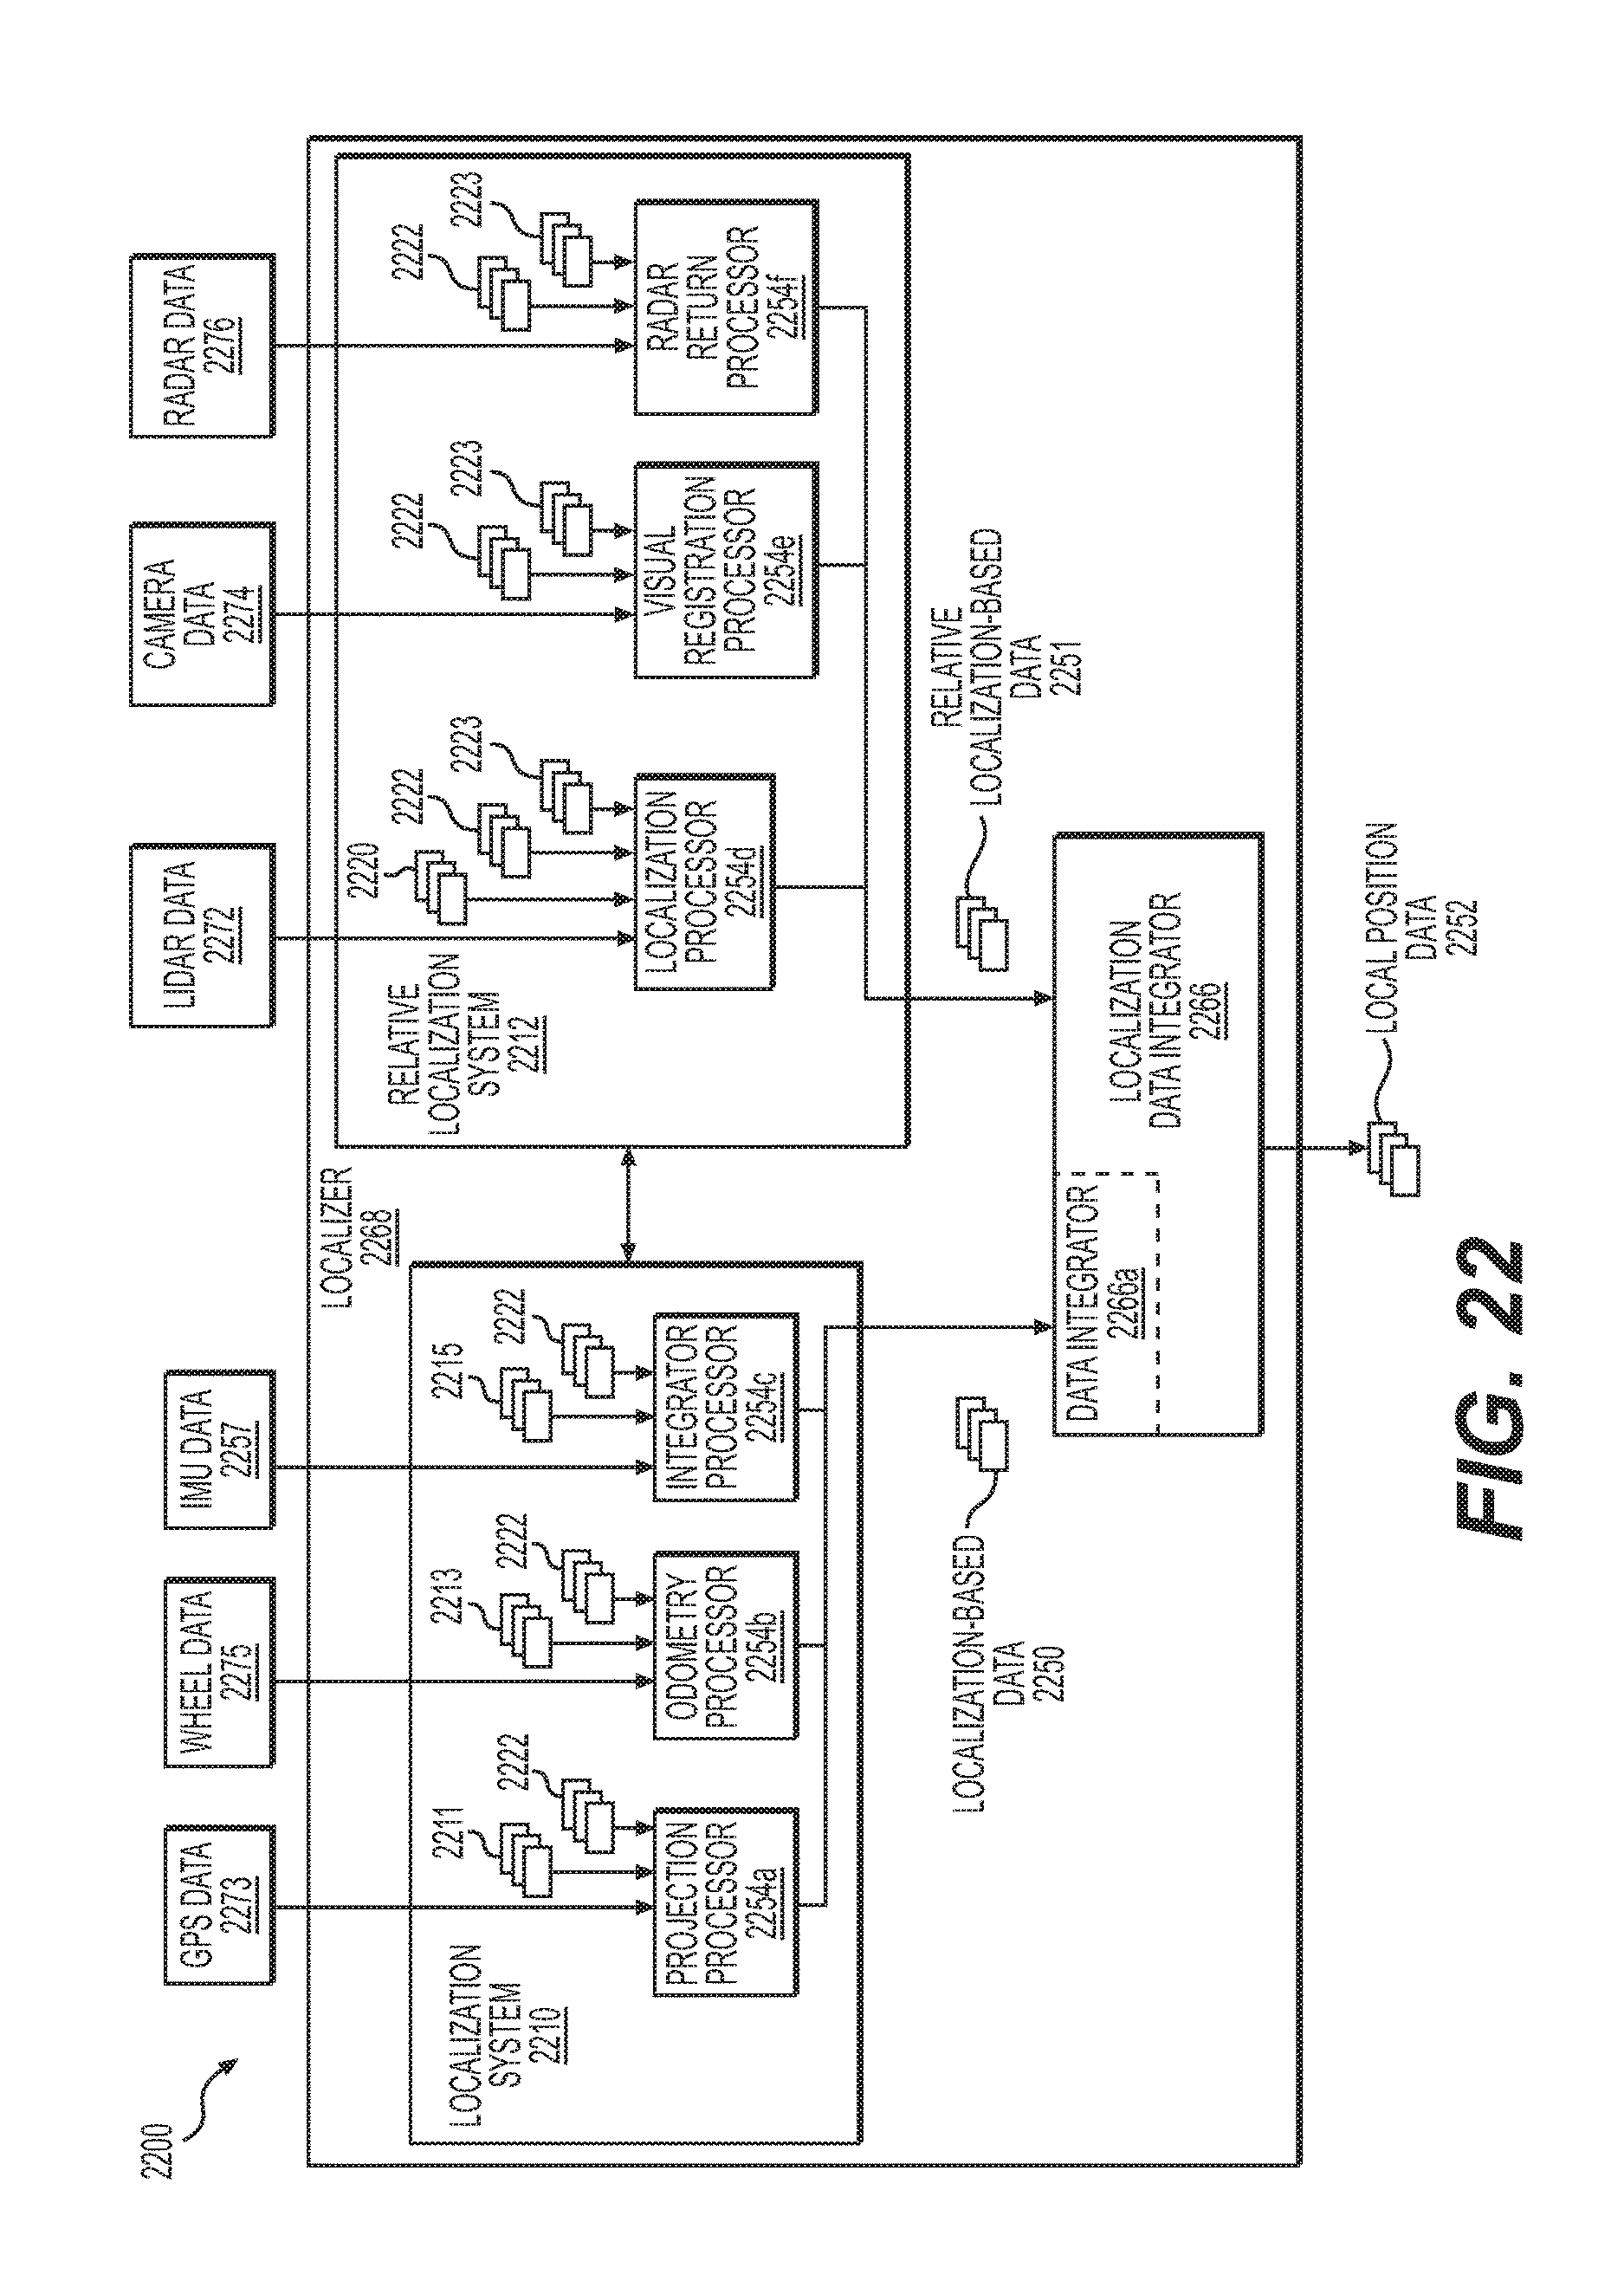 Patent Us 9720415 B2 Topic Relays Switched And Loaded From Same Power Source Read 2215 Images